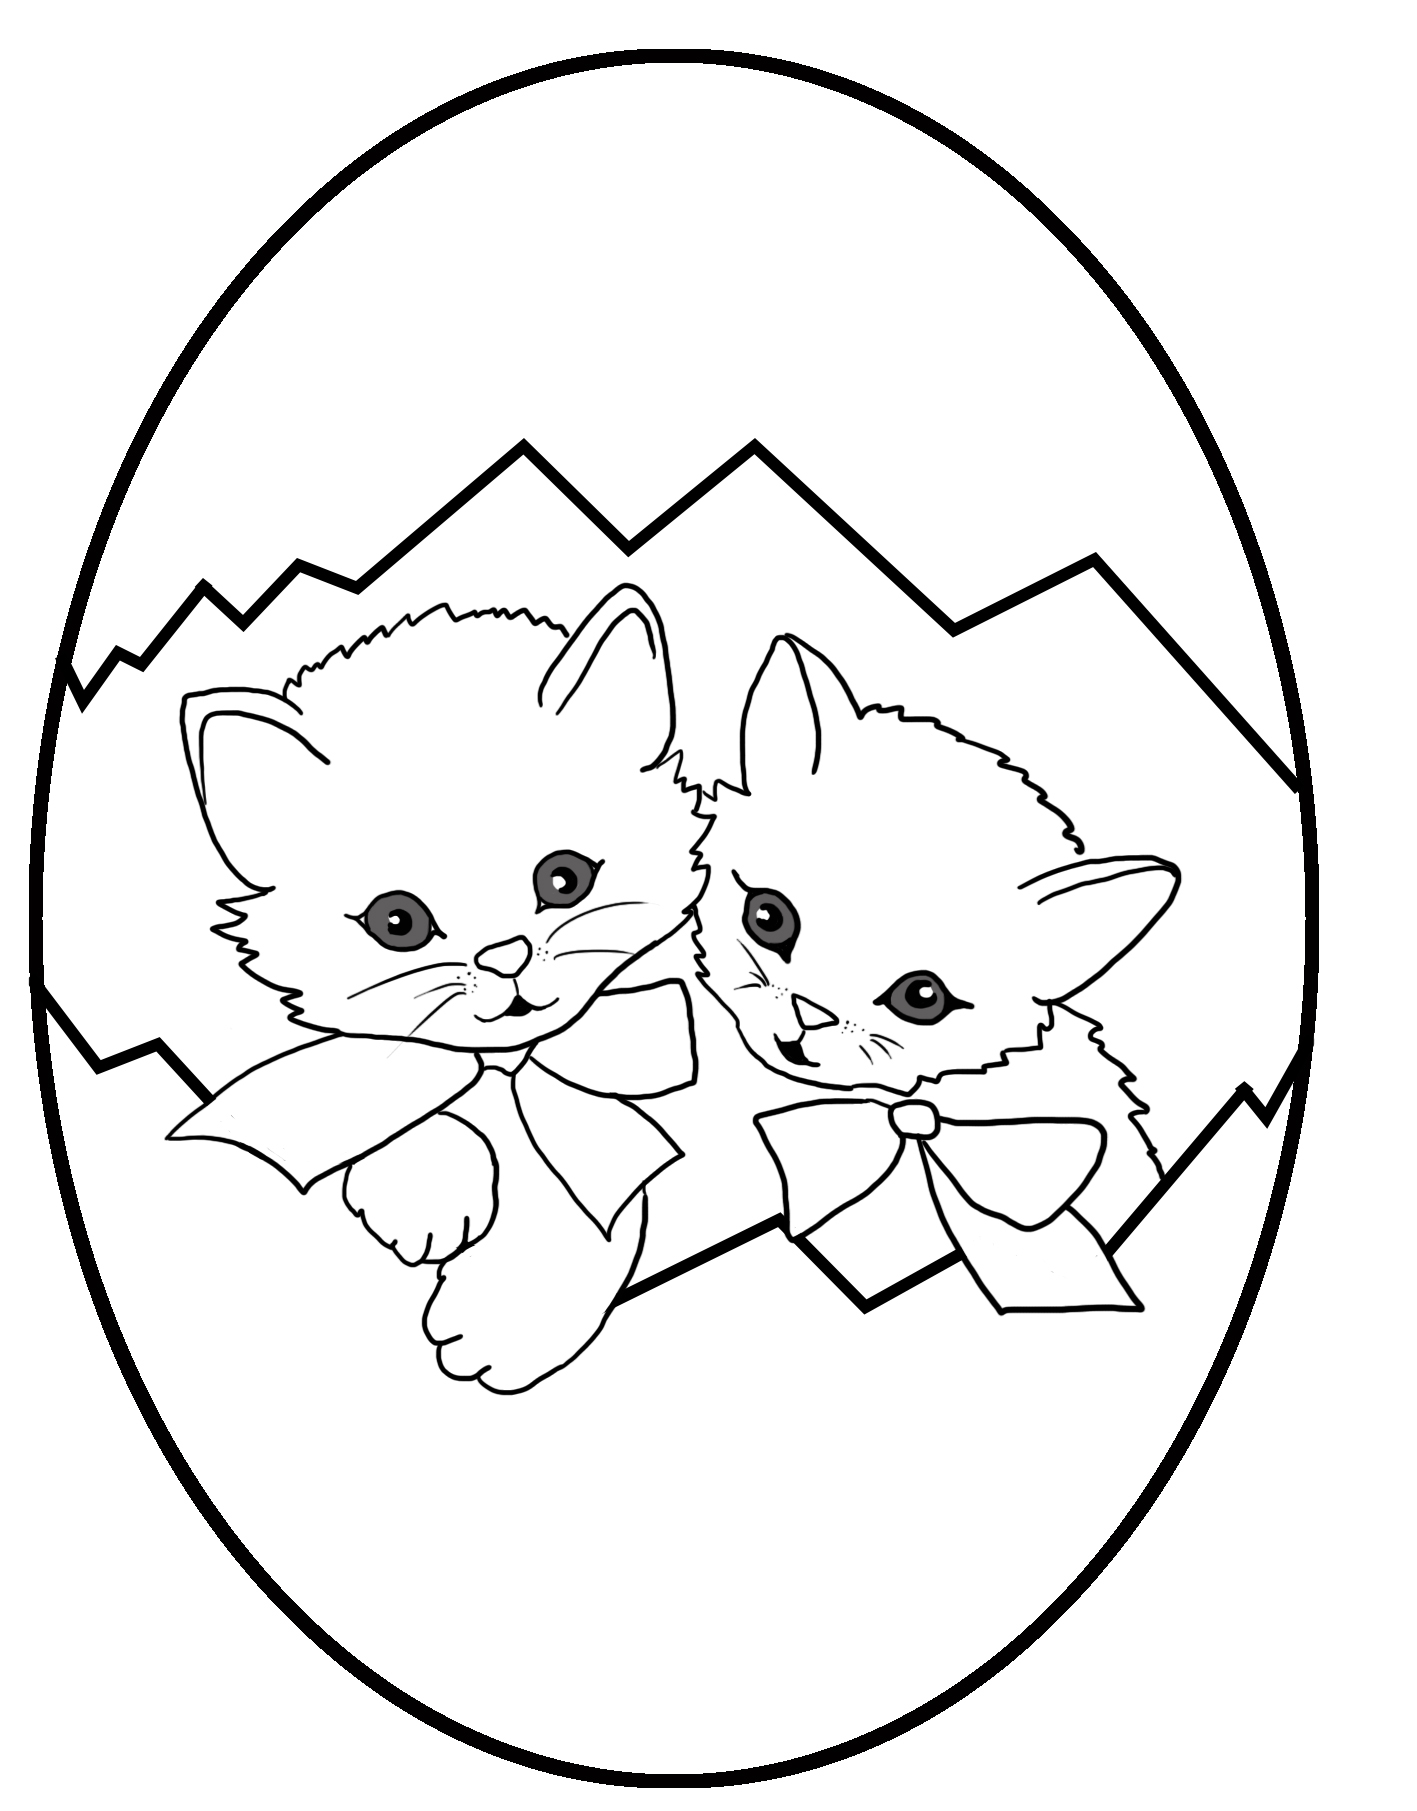 two kittens in an Easter egg